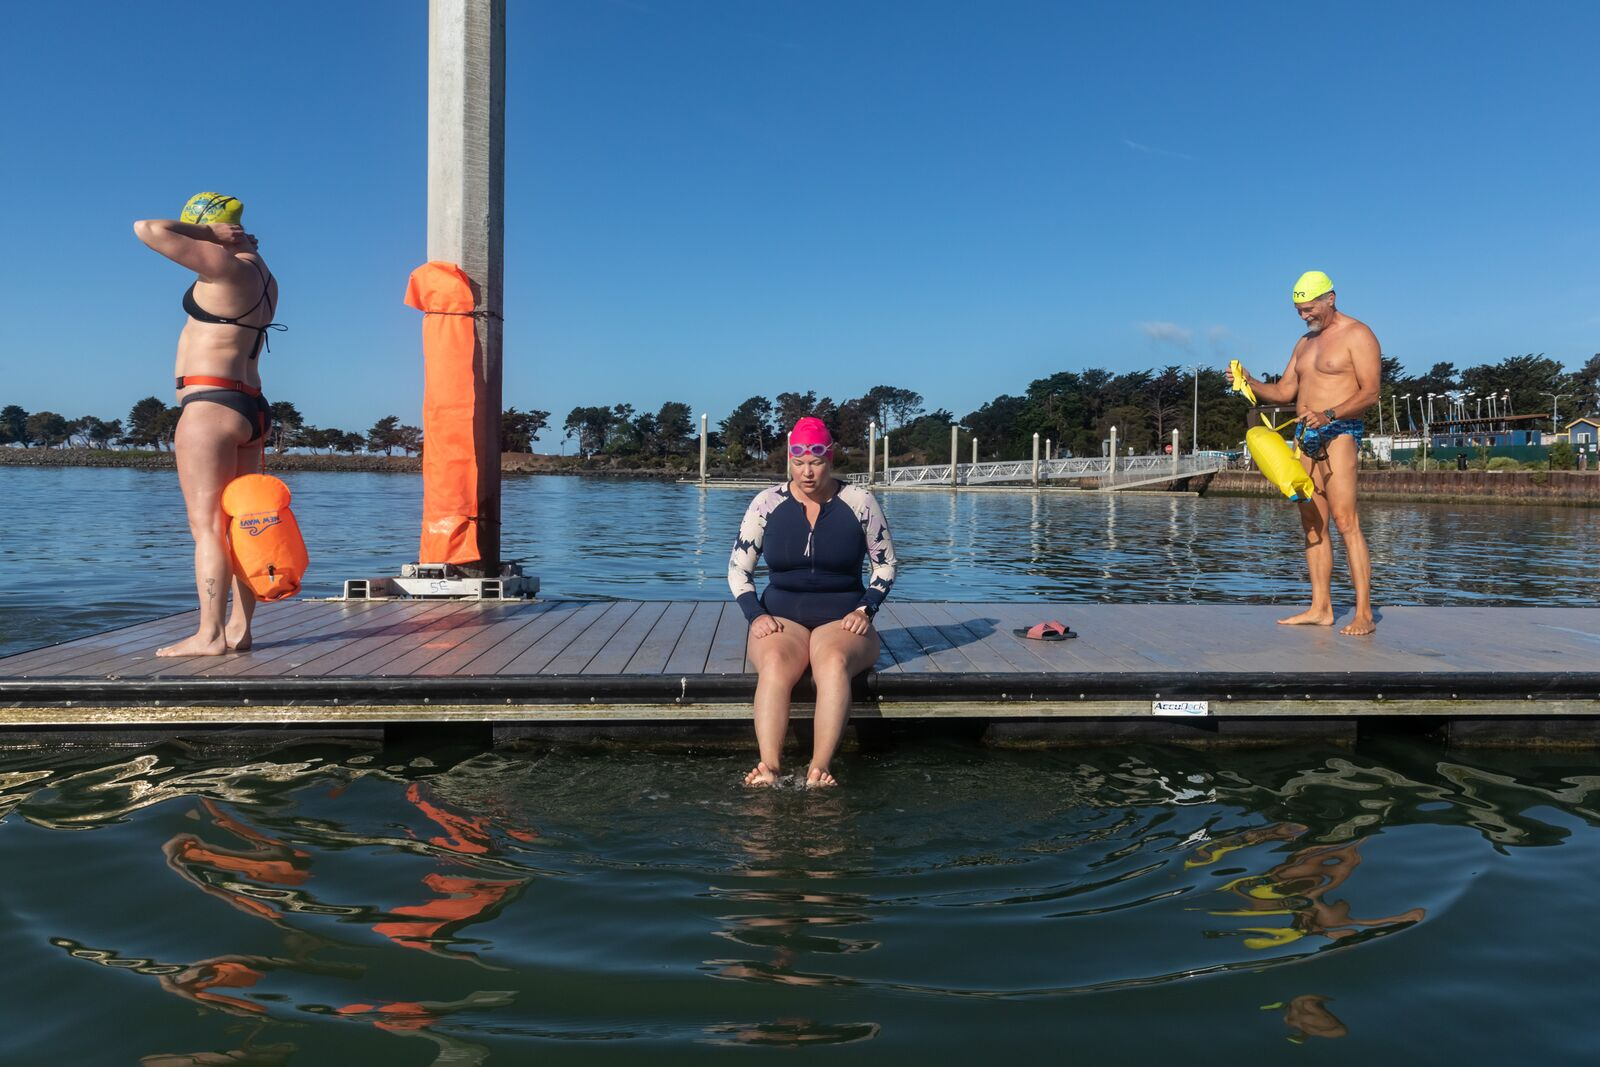 Odyssey open water swimmers prepare to swim in the South Sailing Basin at the Berkeley Marina on September 19, 2021. Credit: Kelly Sullivan